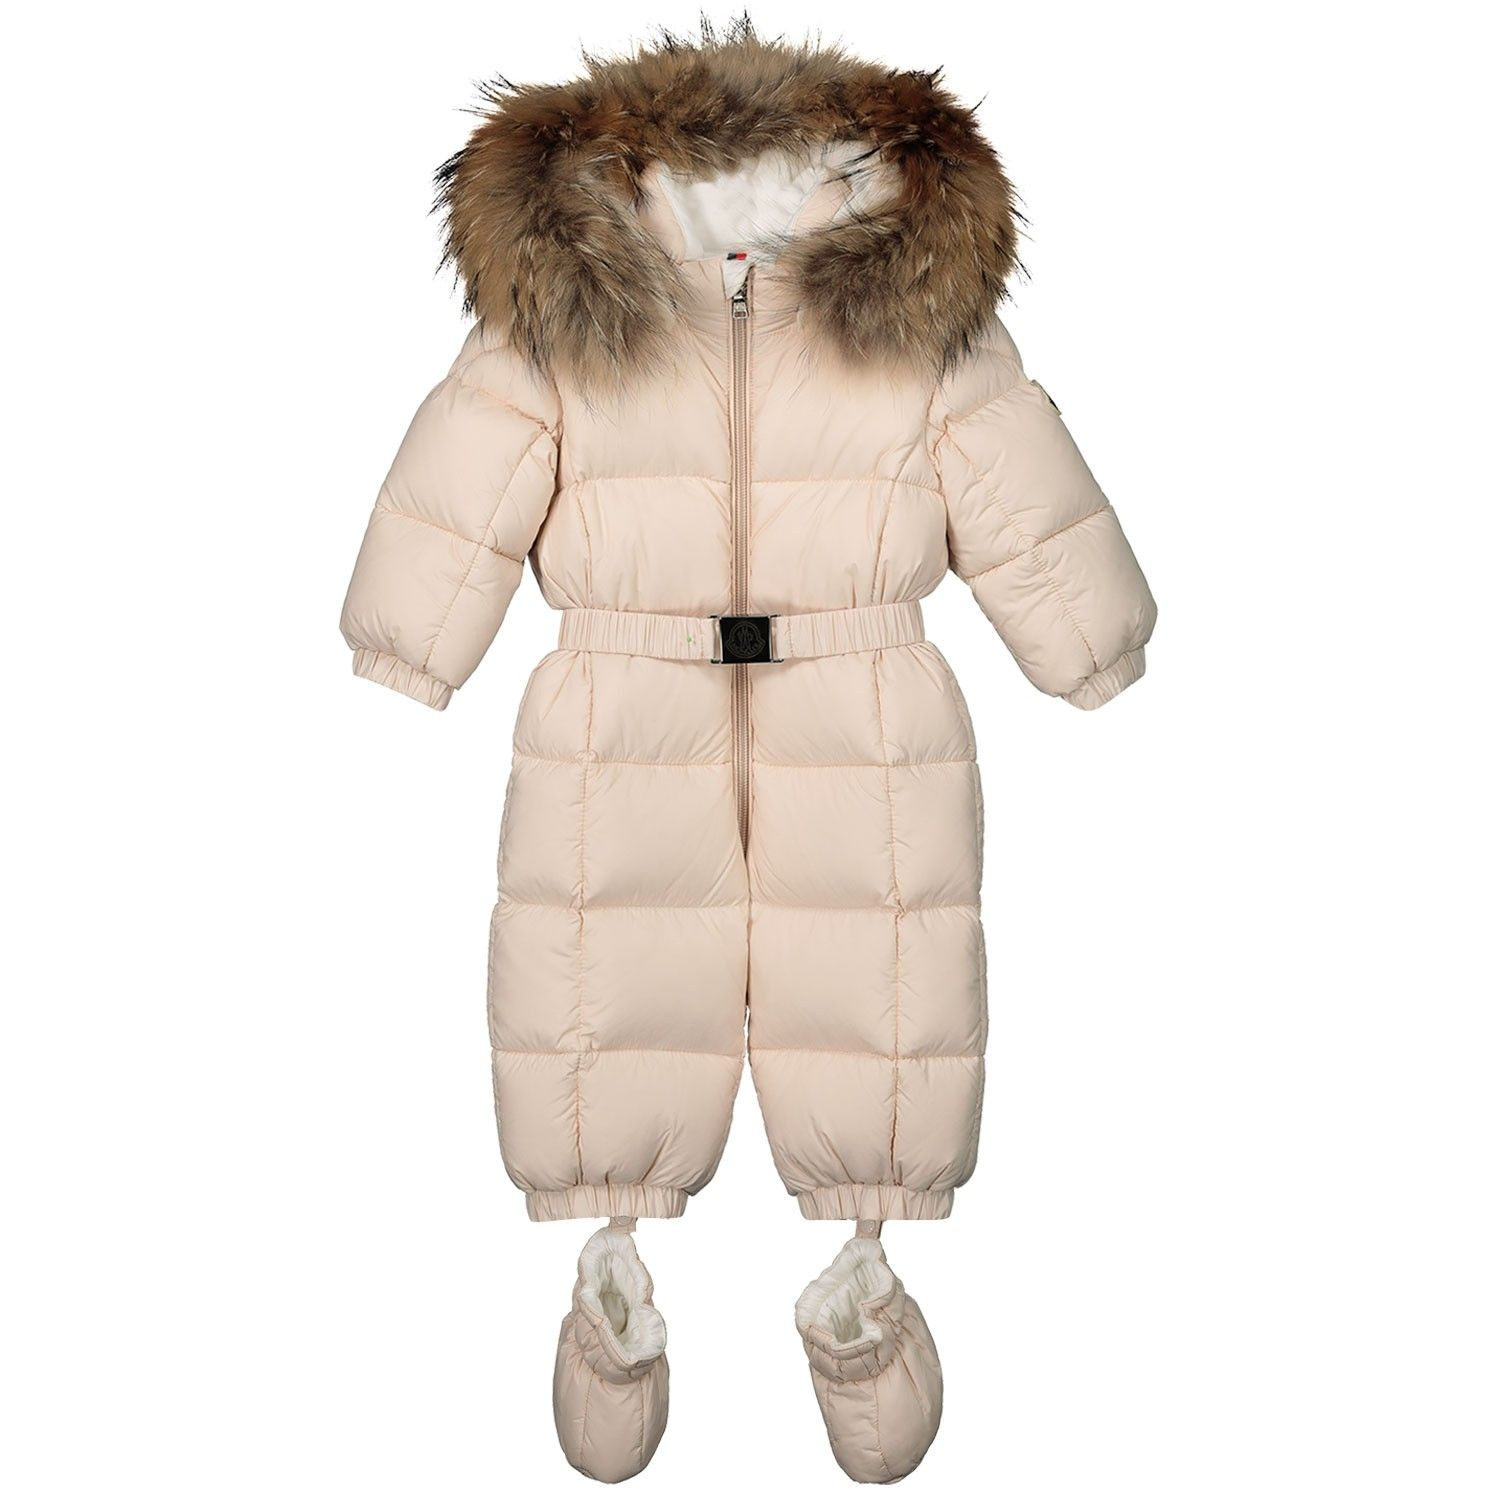 Picture of Moncler 1435525 baby snowsuit light pink